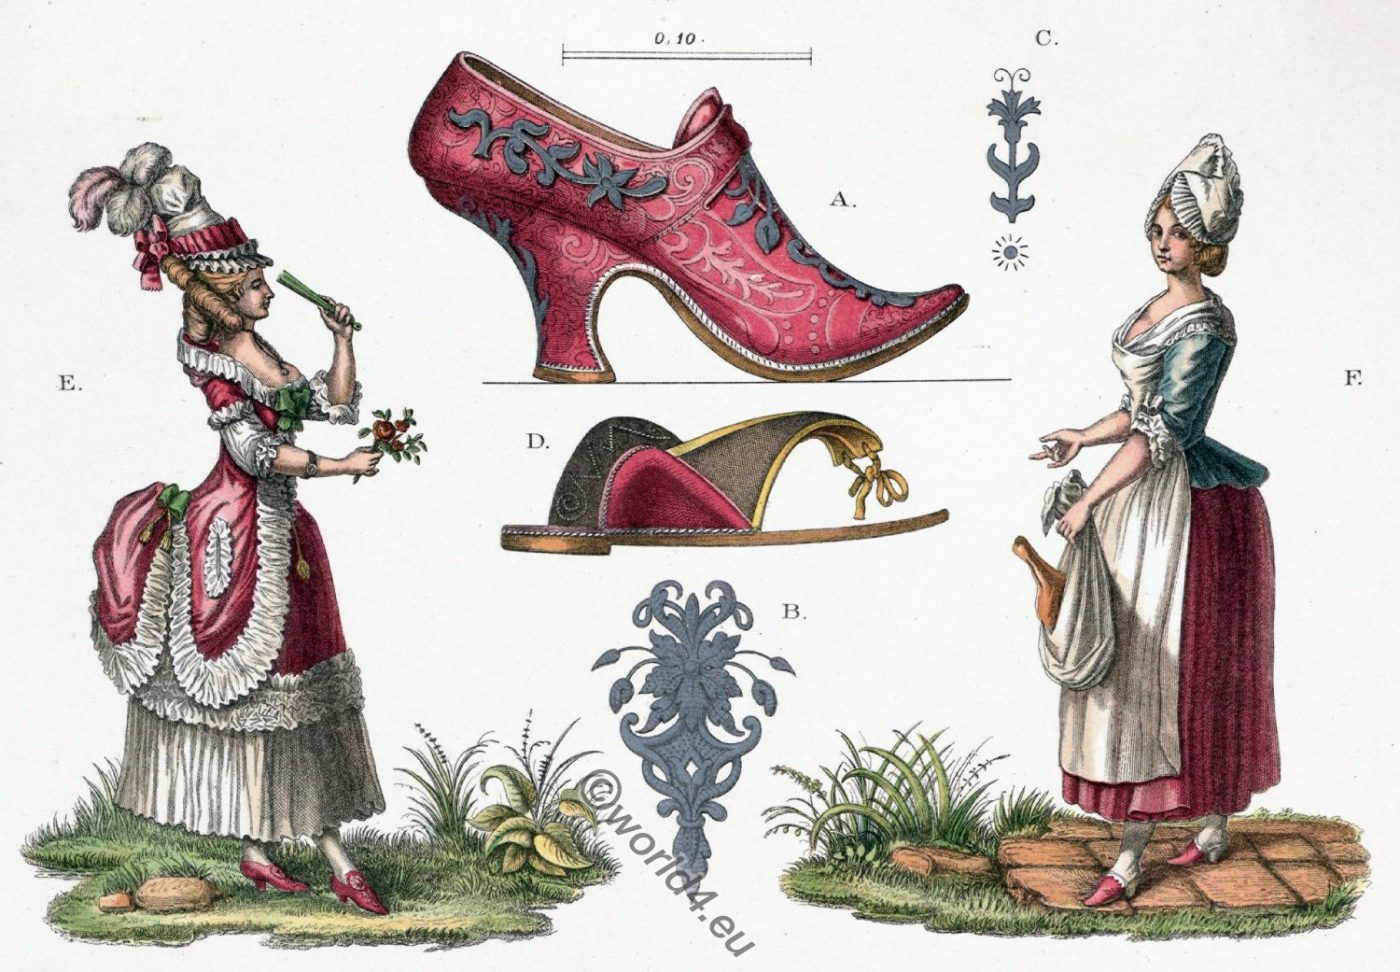 Female, costumes, Shoe fashion, rococo, costumes, high heels